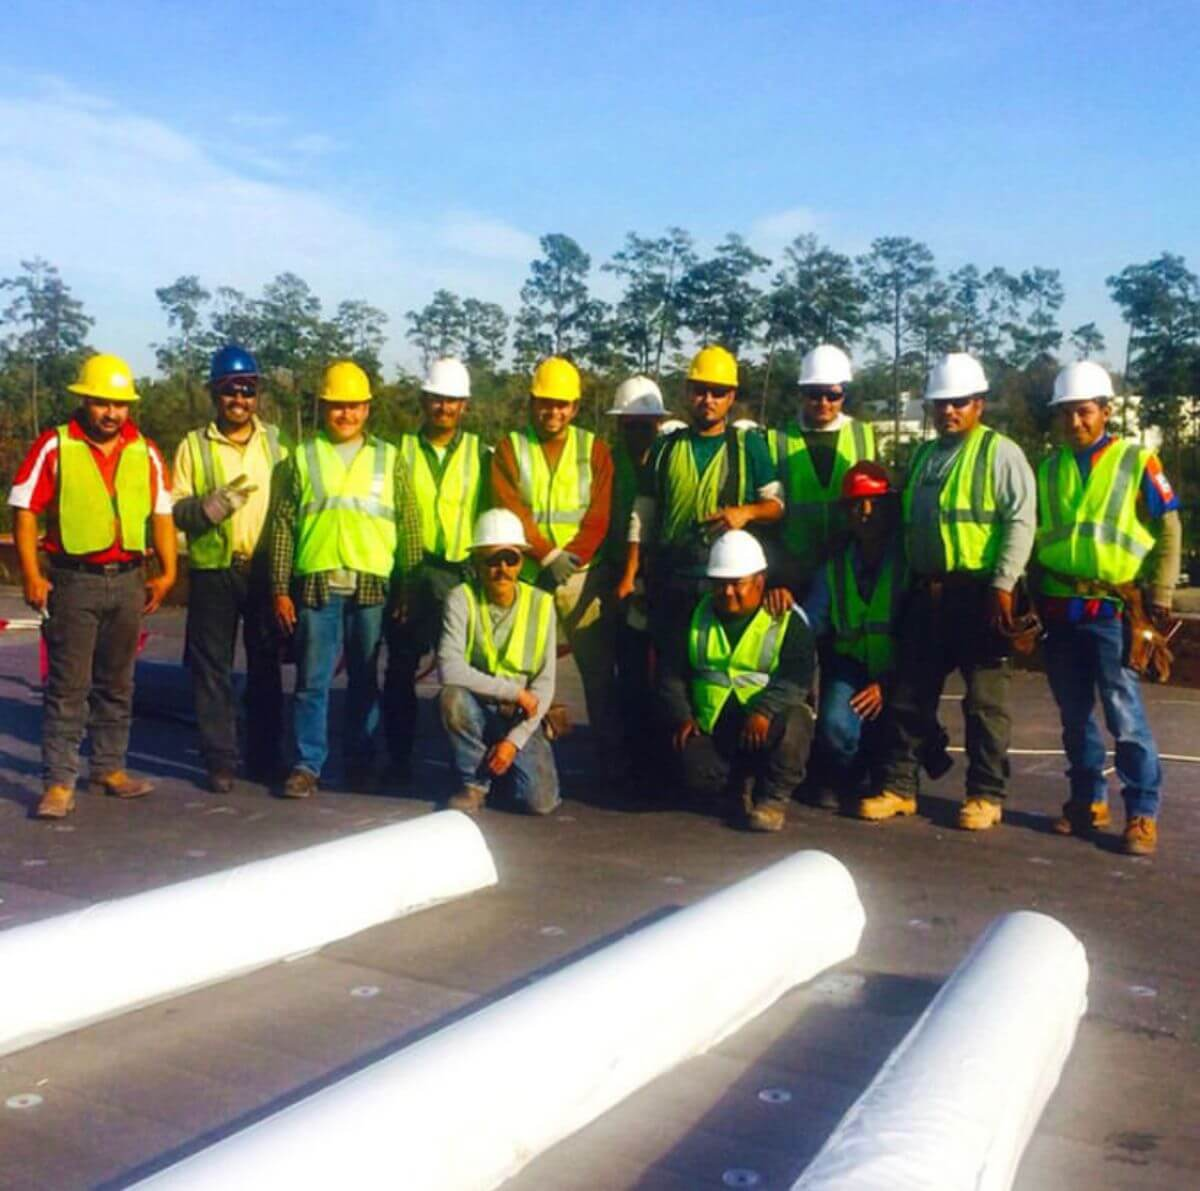 Dallas Commercial Roofing Team